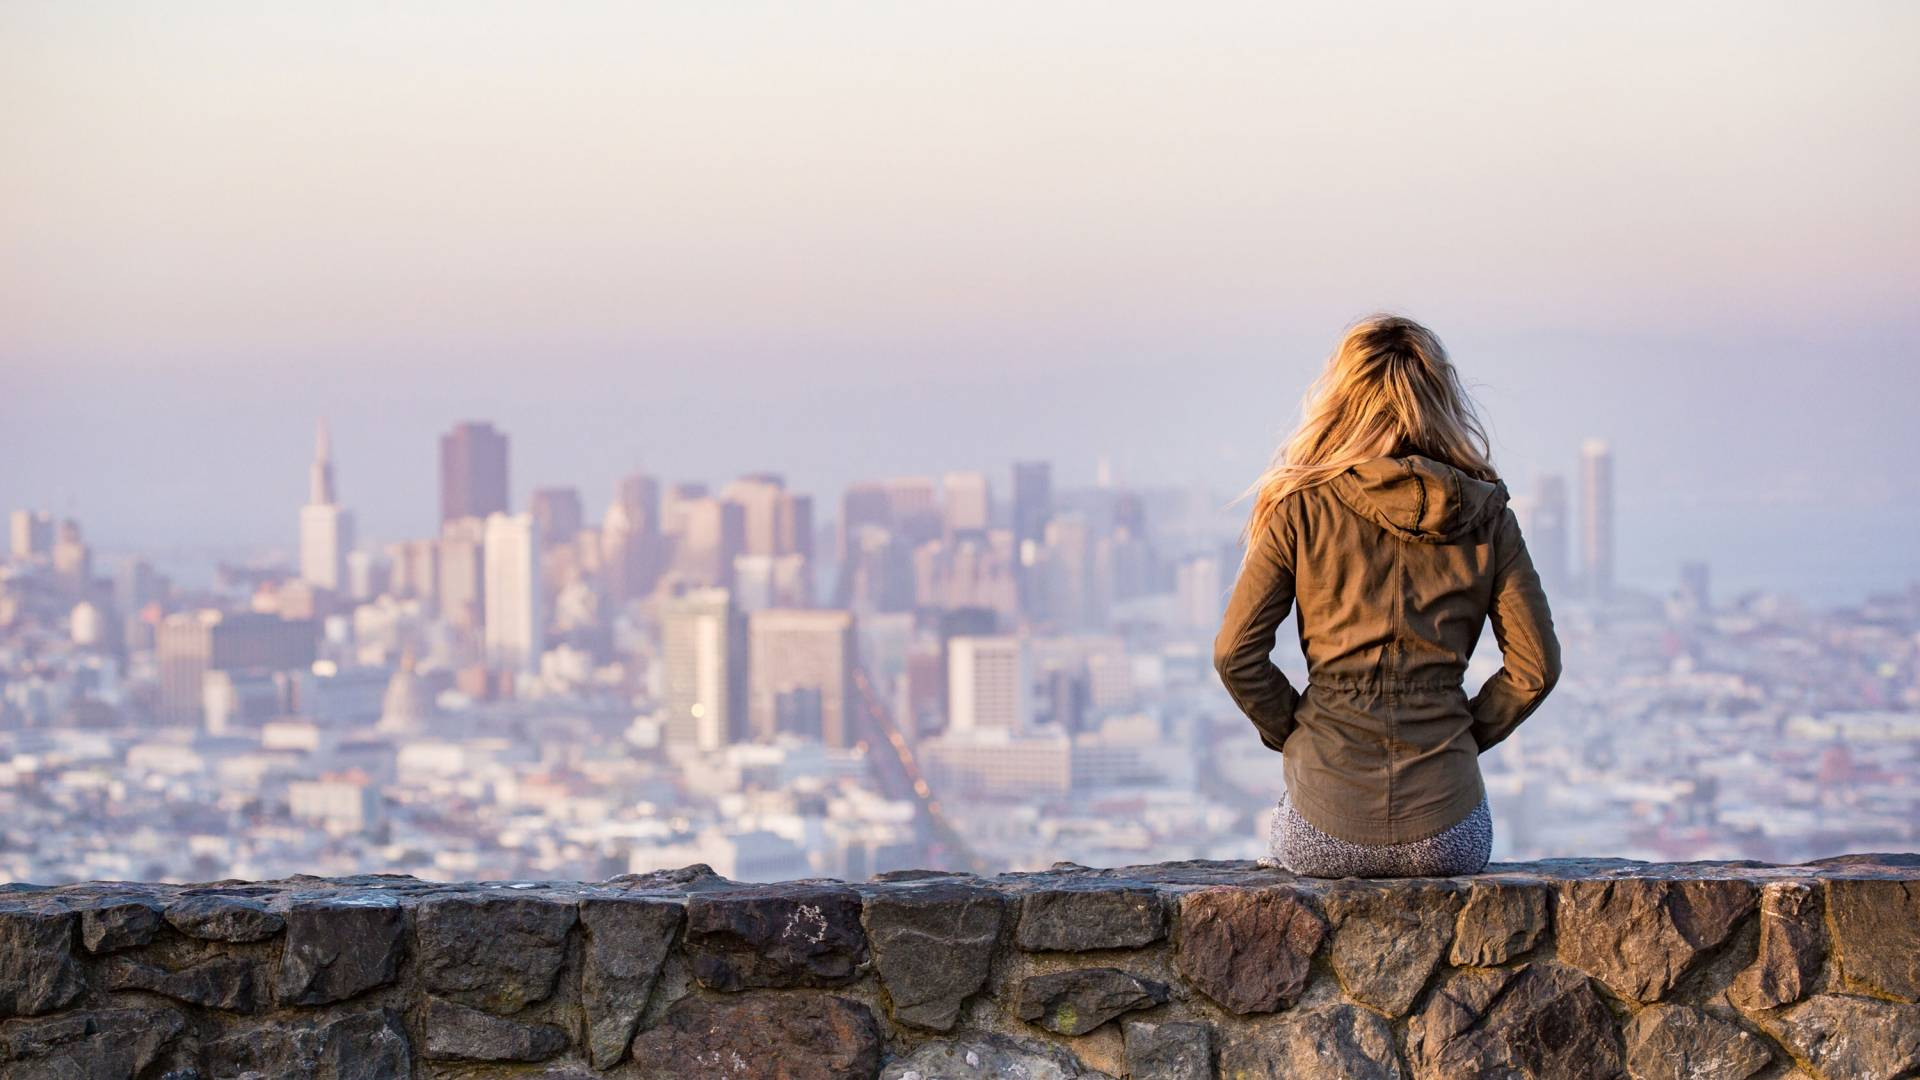 Girl sitting on a stone wall looking out over a city